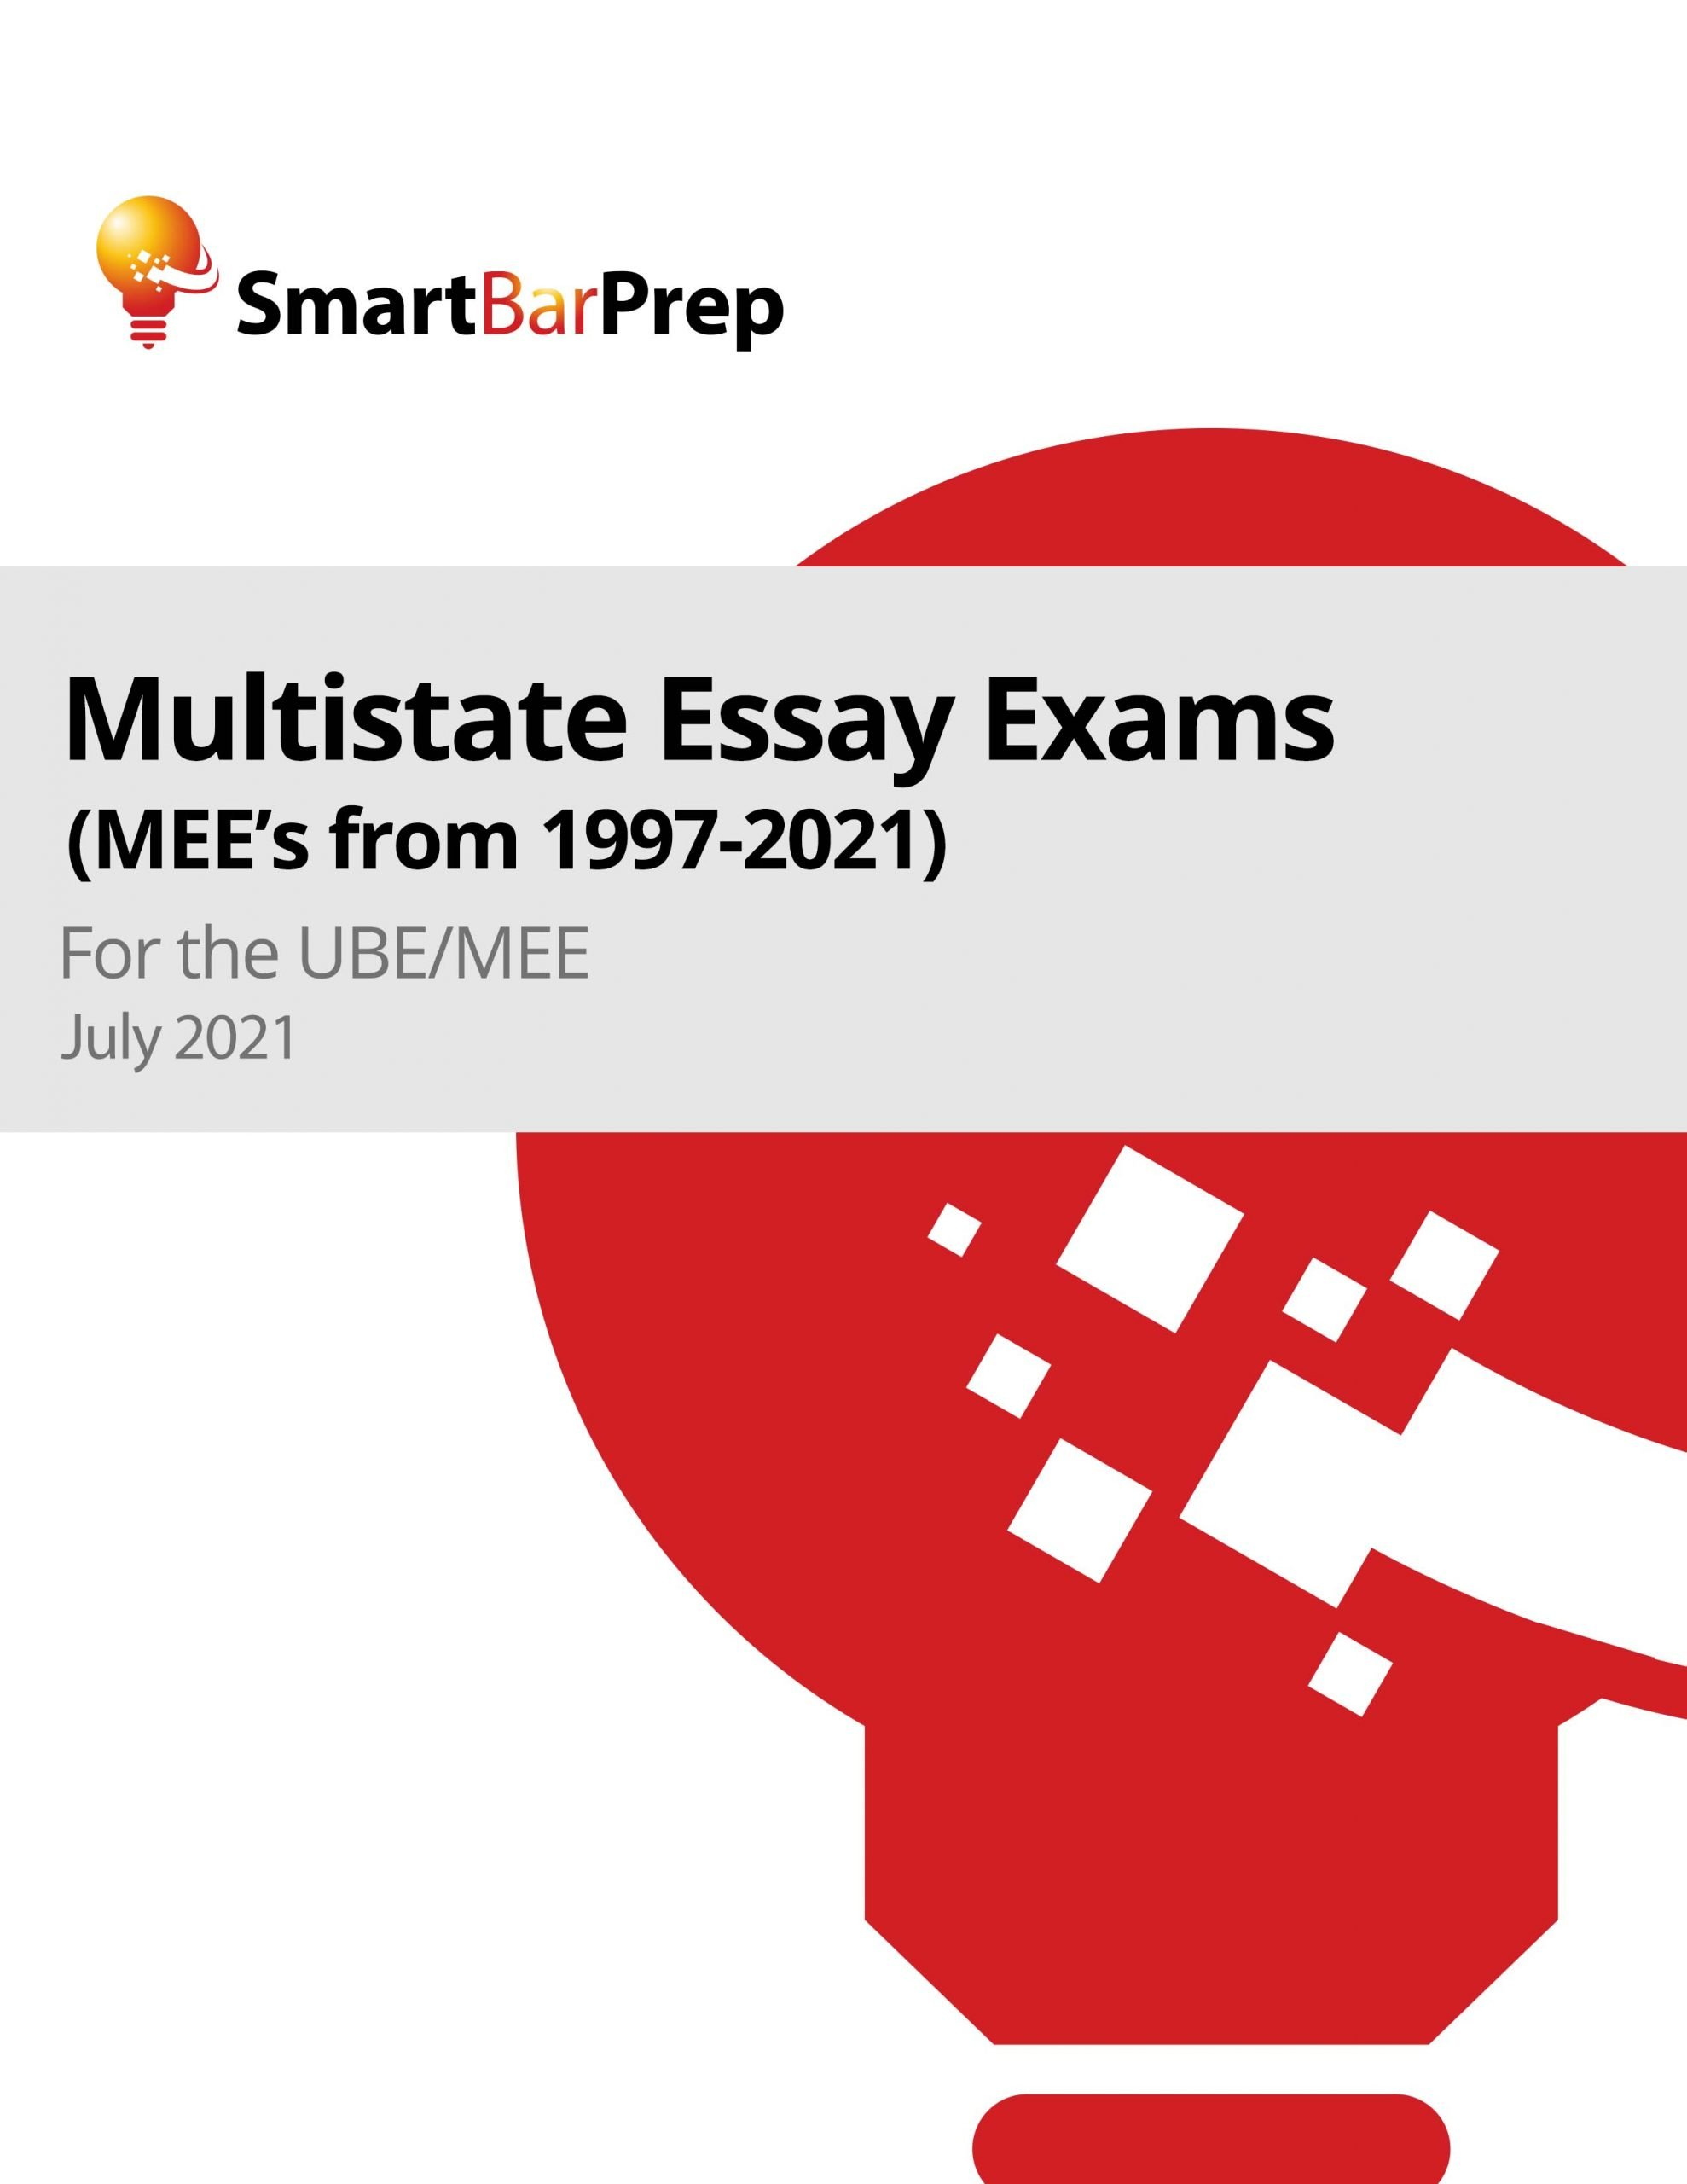 Past MEE Exams cover